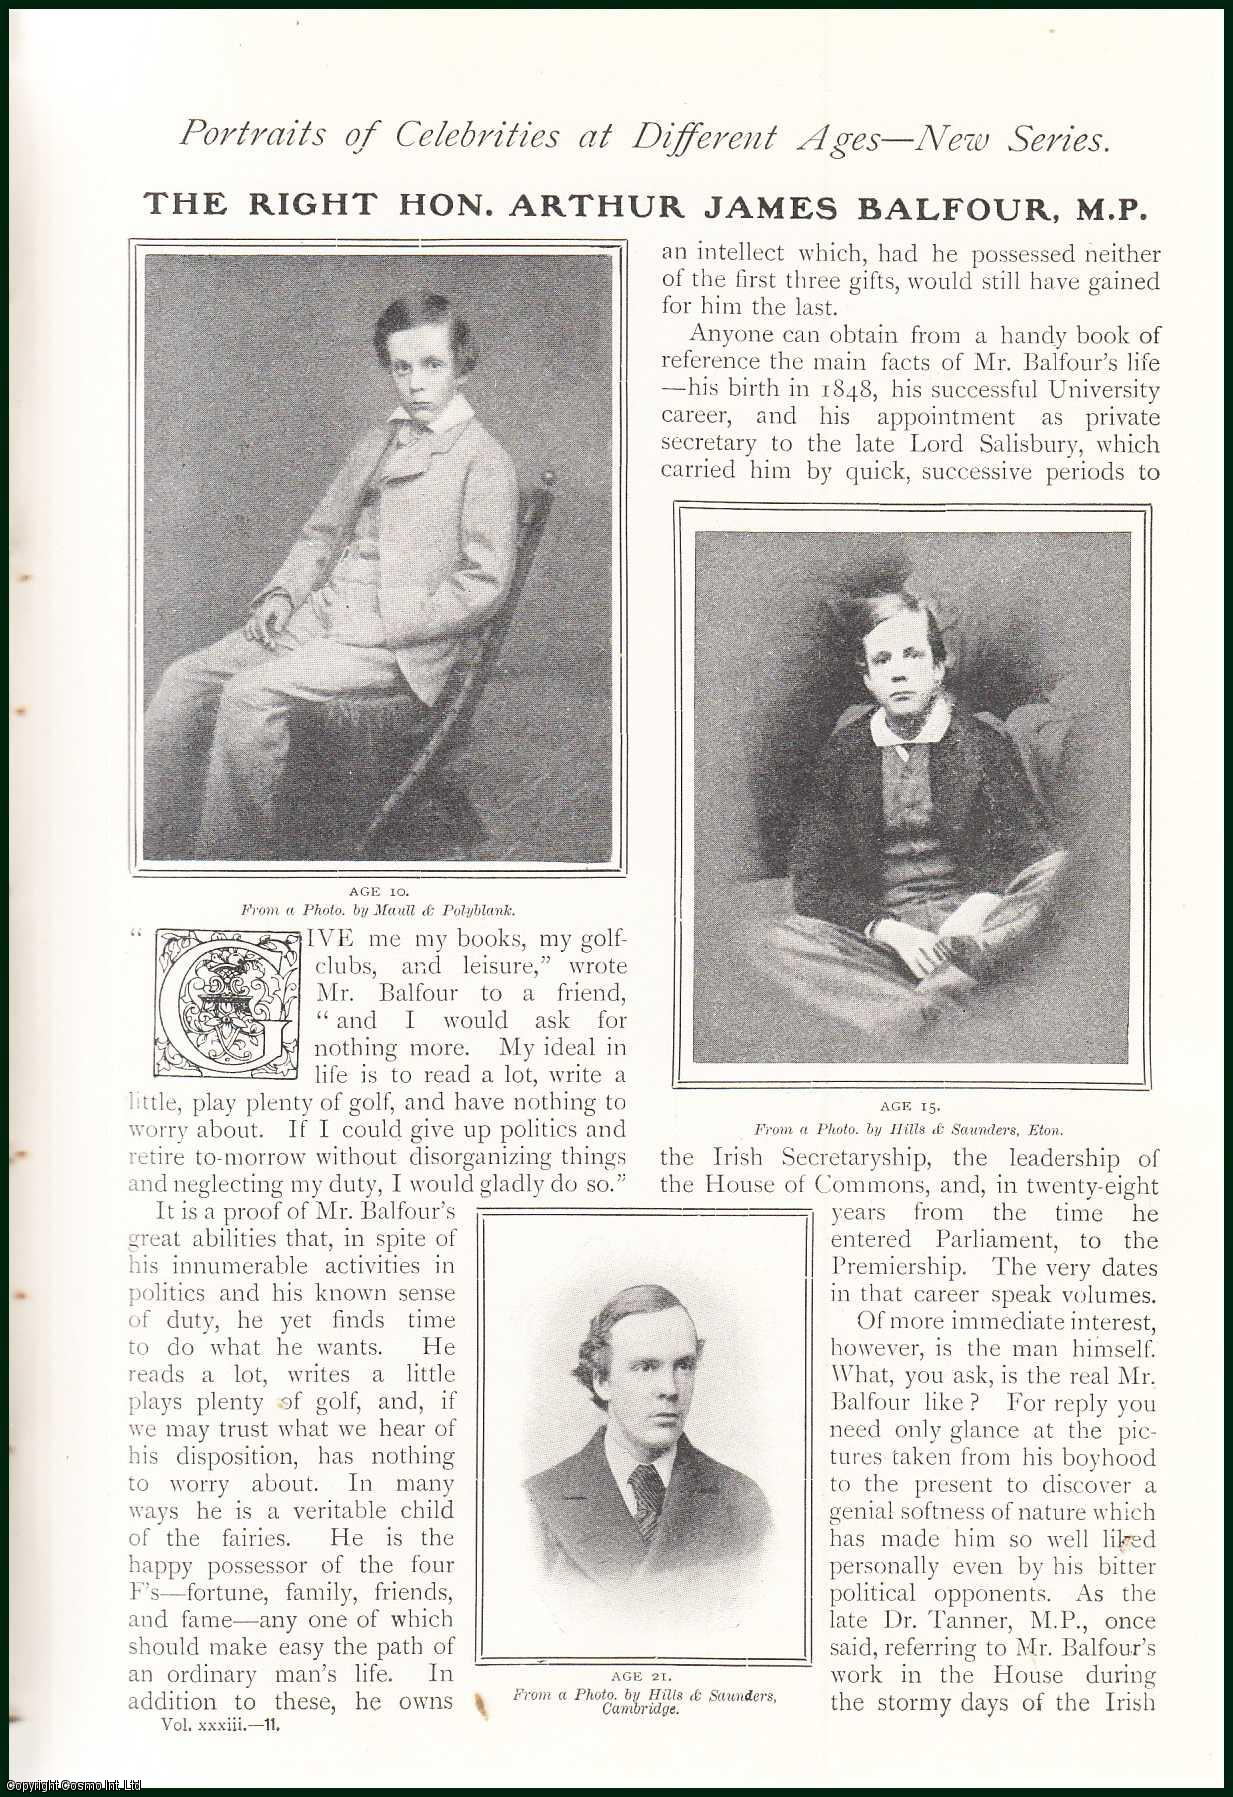 --- - The Right Hon. Arthur James Balfour. Portraits of Celebrities at Different Ages. A rare original article from The Strand Magazine, 1907.